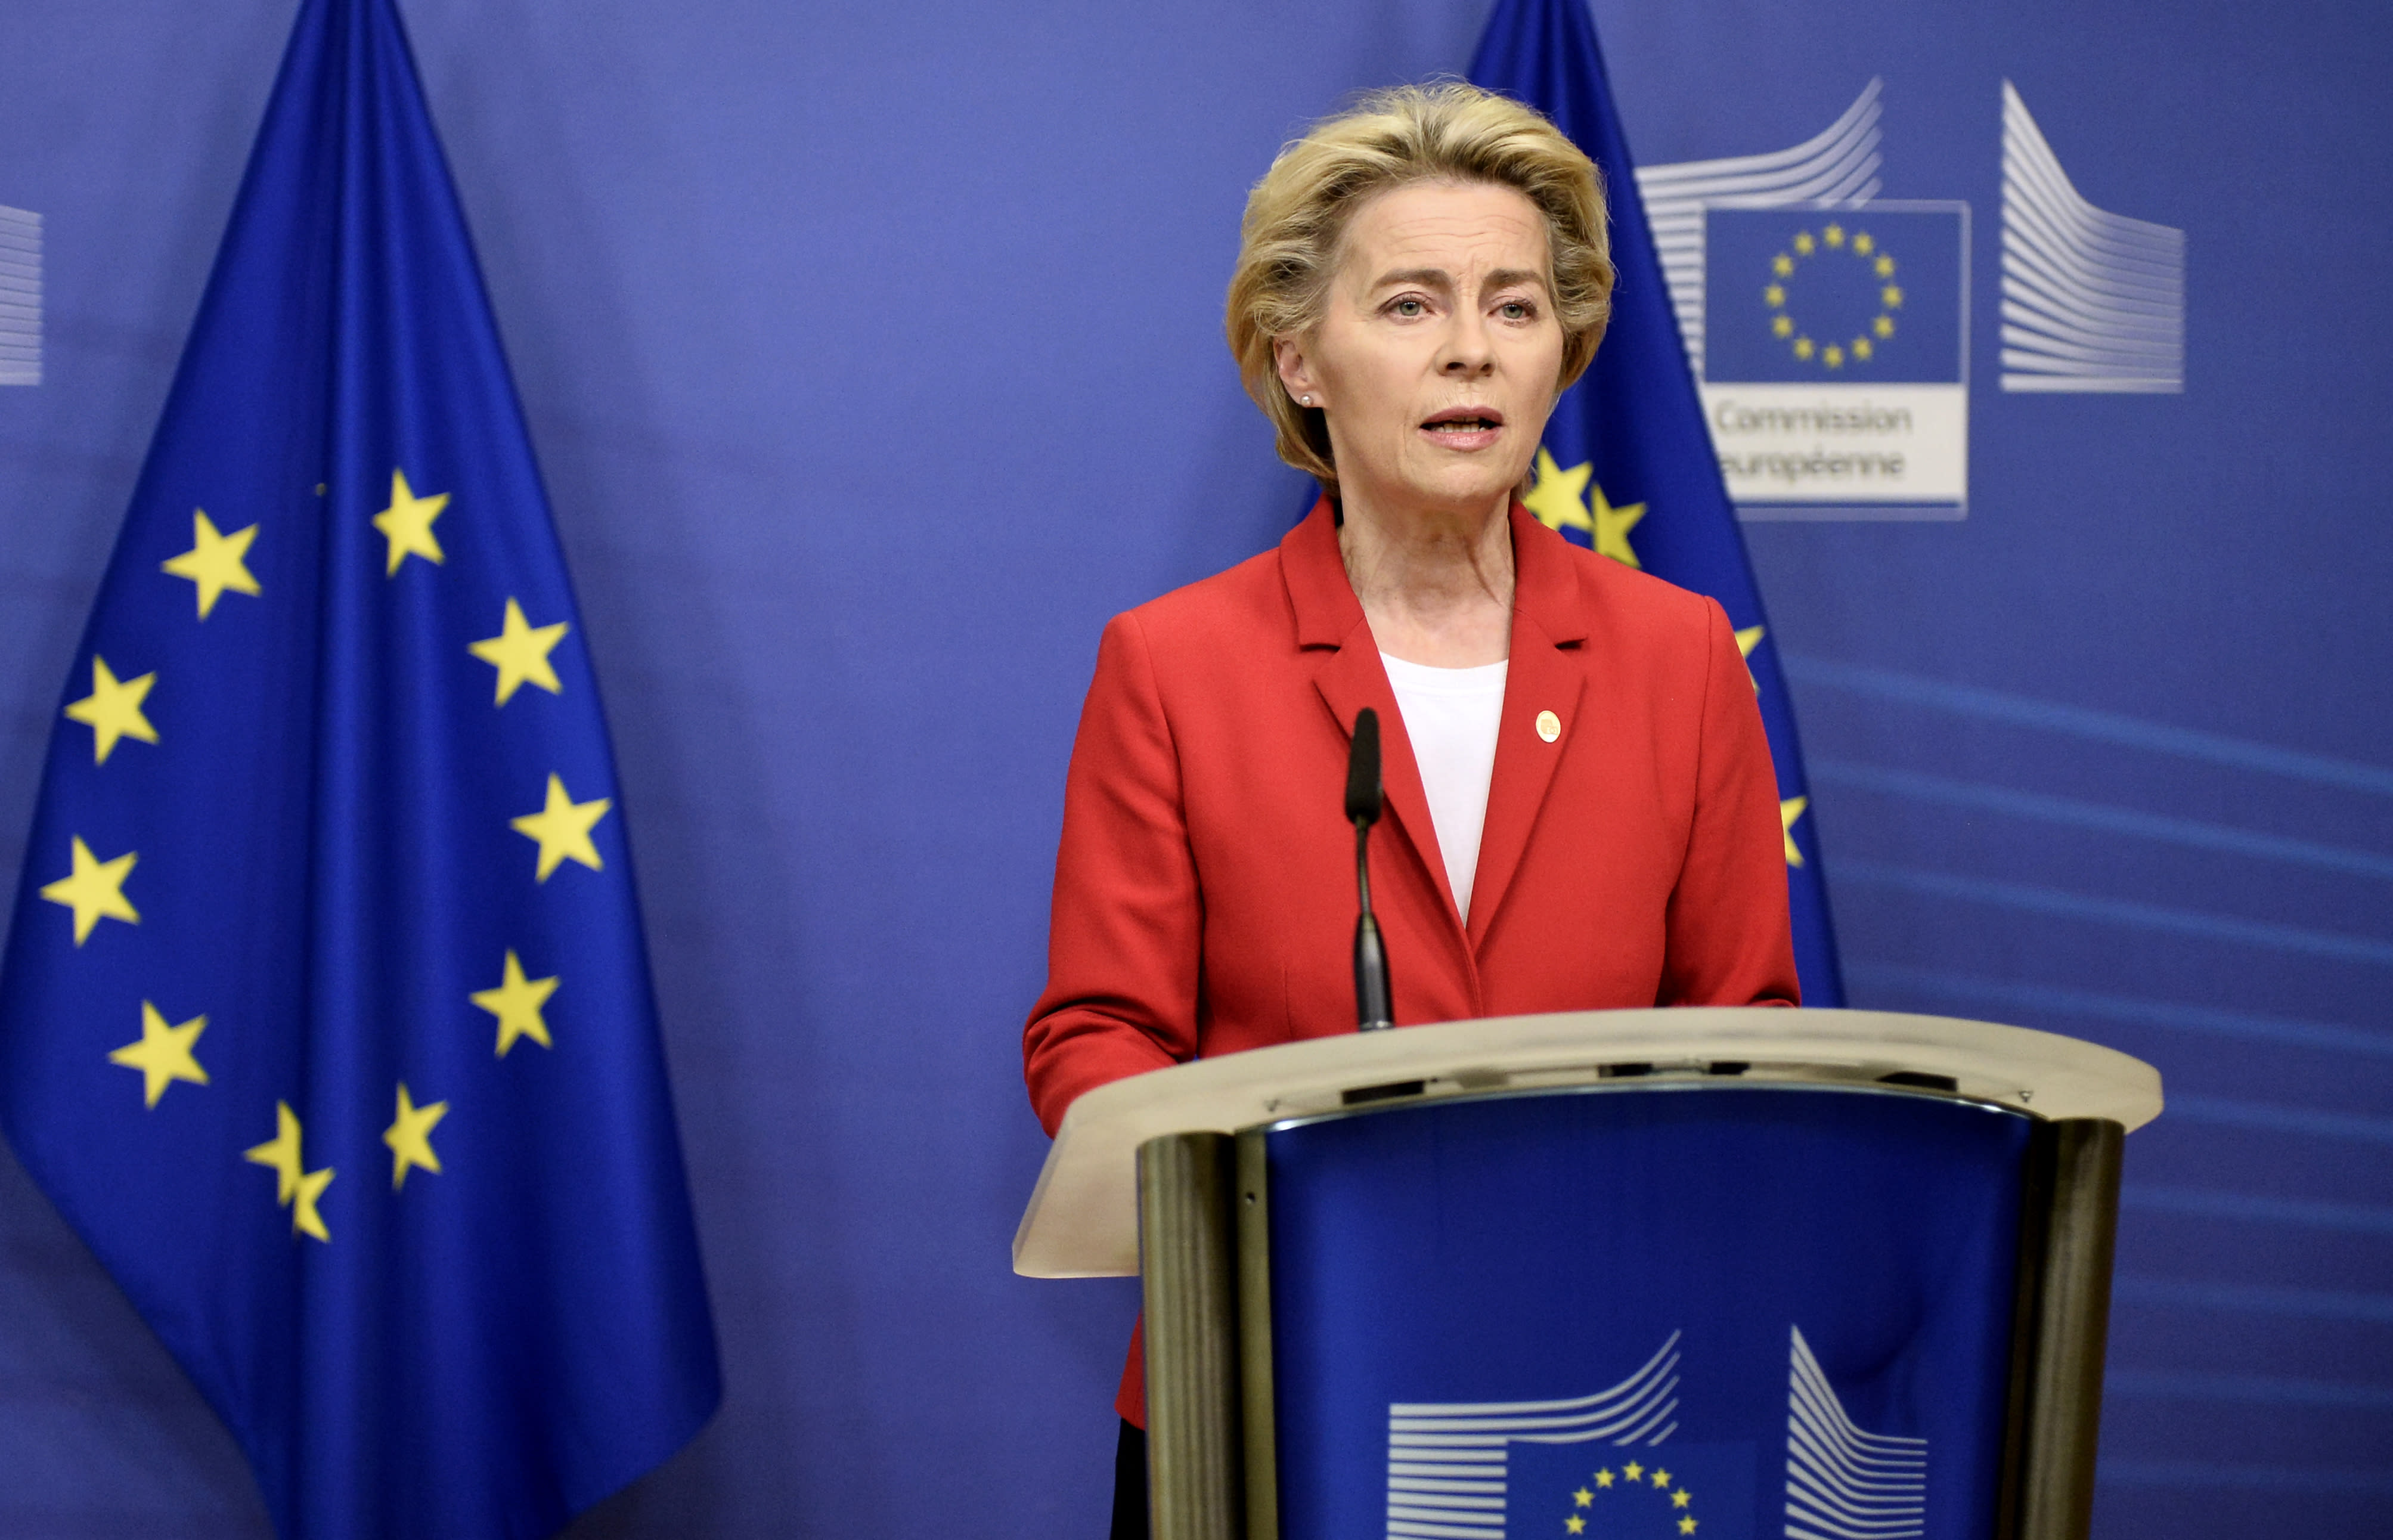 European Commission President Ursula von der Leyen makes a statement regarding teh Withdrawl Agreement at EU headquarters in Brussels, Thursday, Oct. 1, 2020. The European Union took legal action against Britain on Thursday over its plans to pass legislation that would breach parts of the legally binding divorce agreement the two sides reached late last year. (Johanna Geron, Pool via AP)